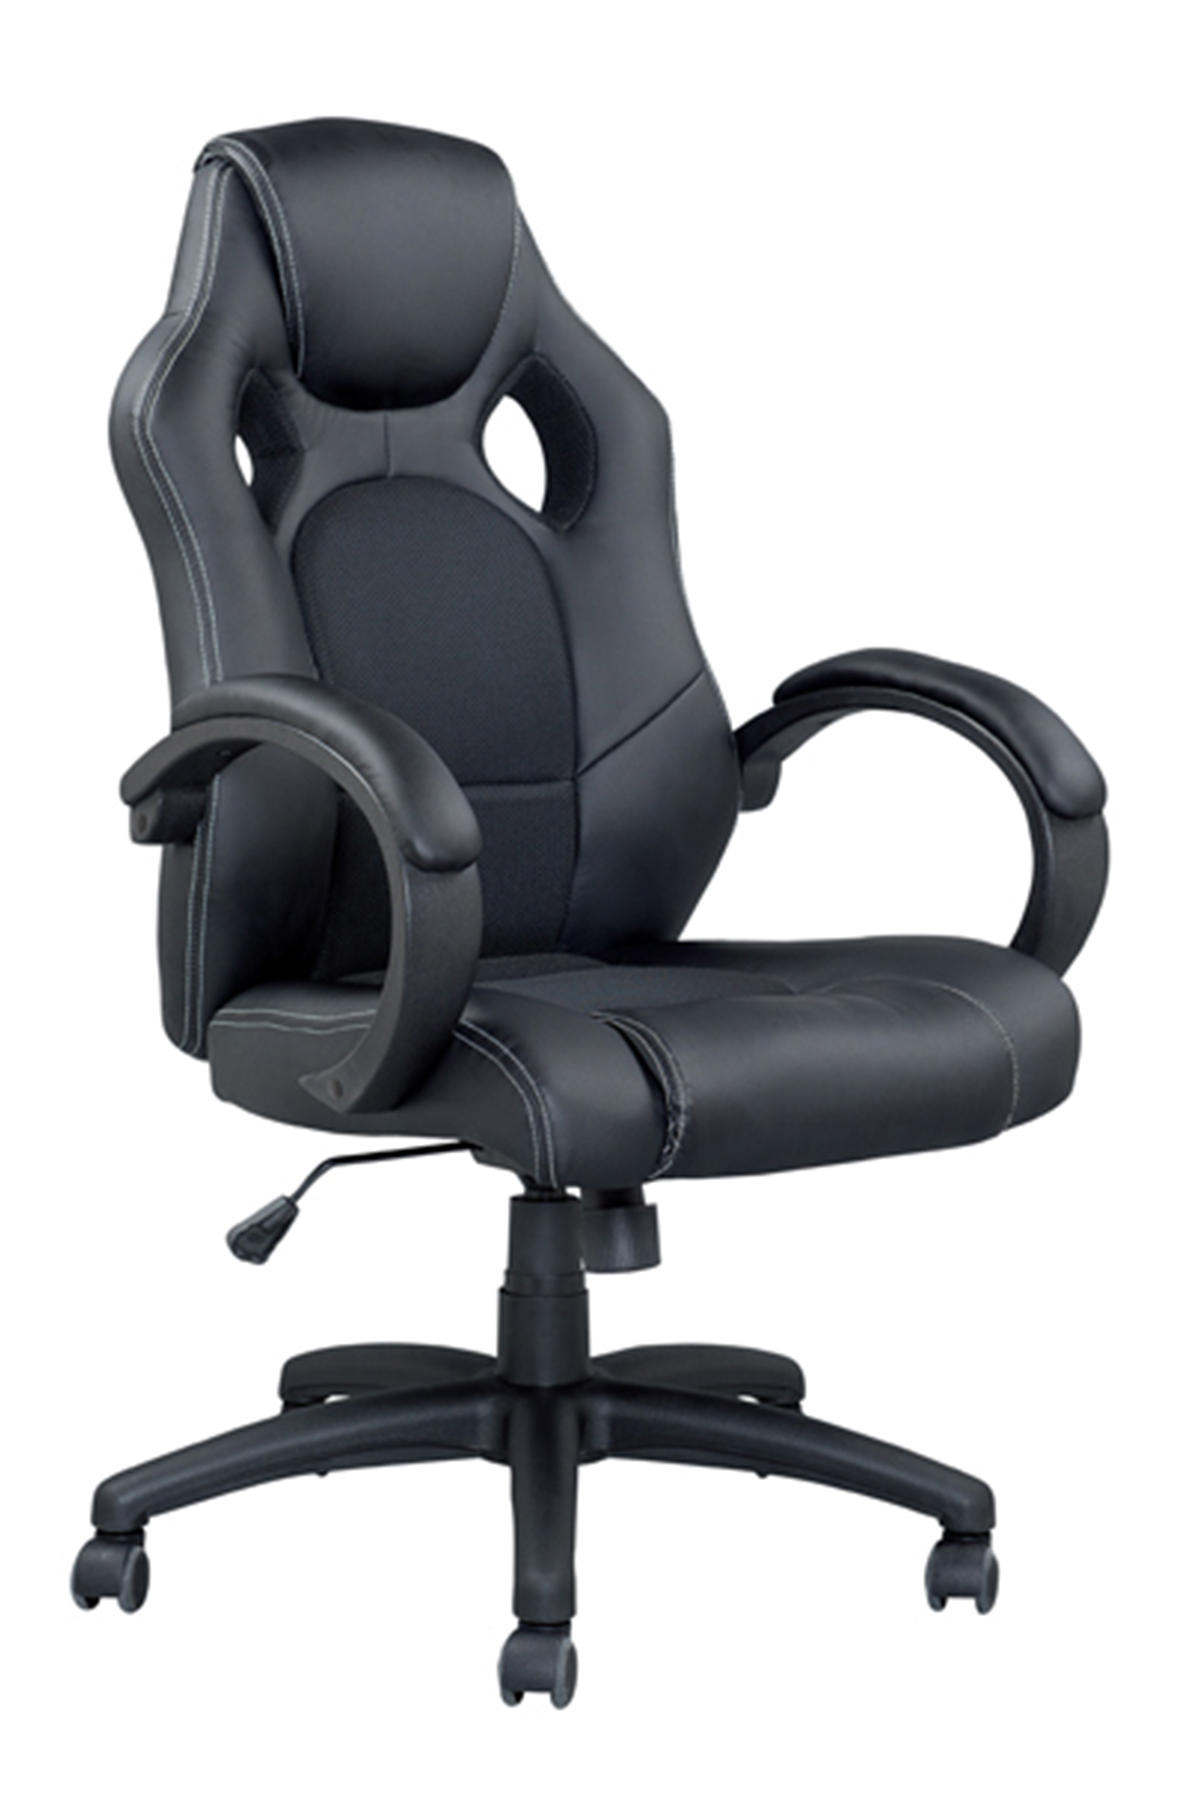 wholesale executive swivel sports gamer racing office chair computer gaming chair